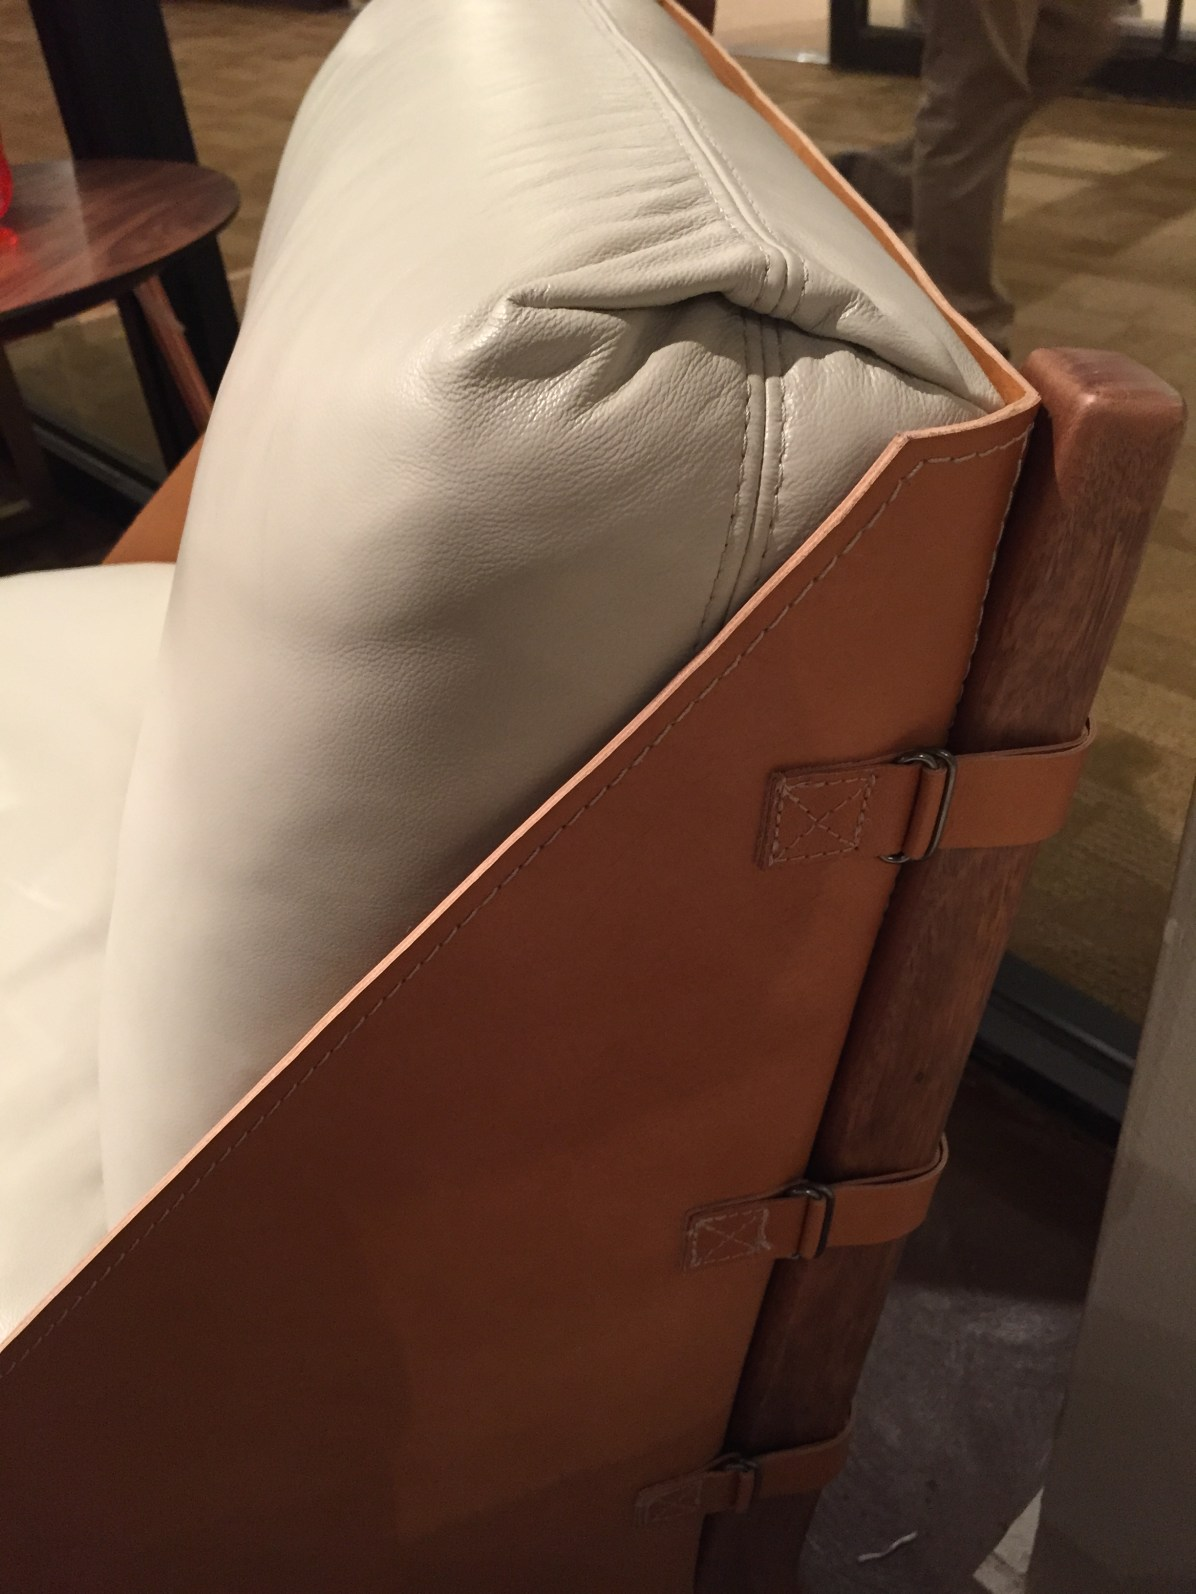 the coolest leather chair ever - just one in white leather with natural leather frame